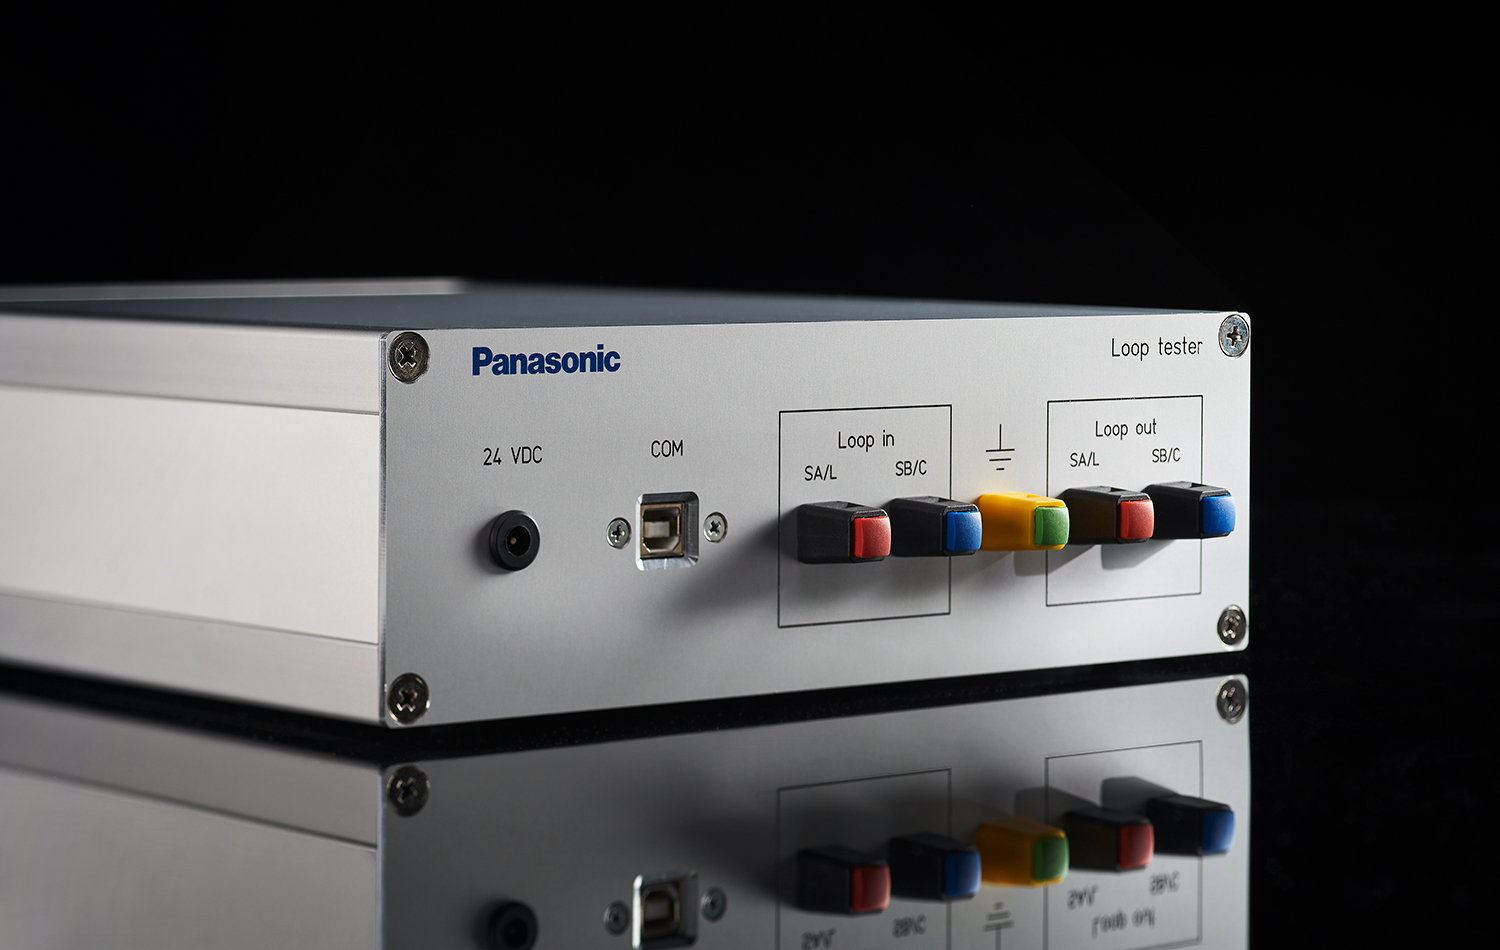 Panasonic LoopTester201910601